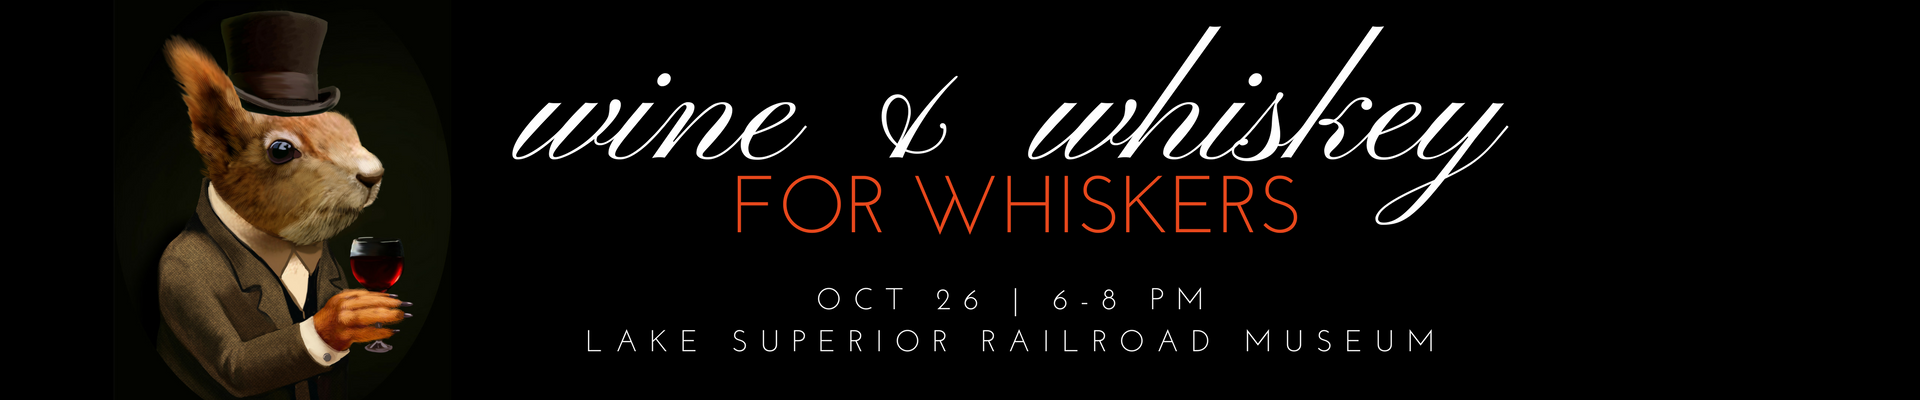 Enjoy wines, whiskies, and hors d'oeuvres while supporting wildlife